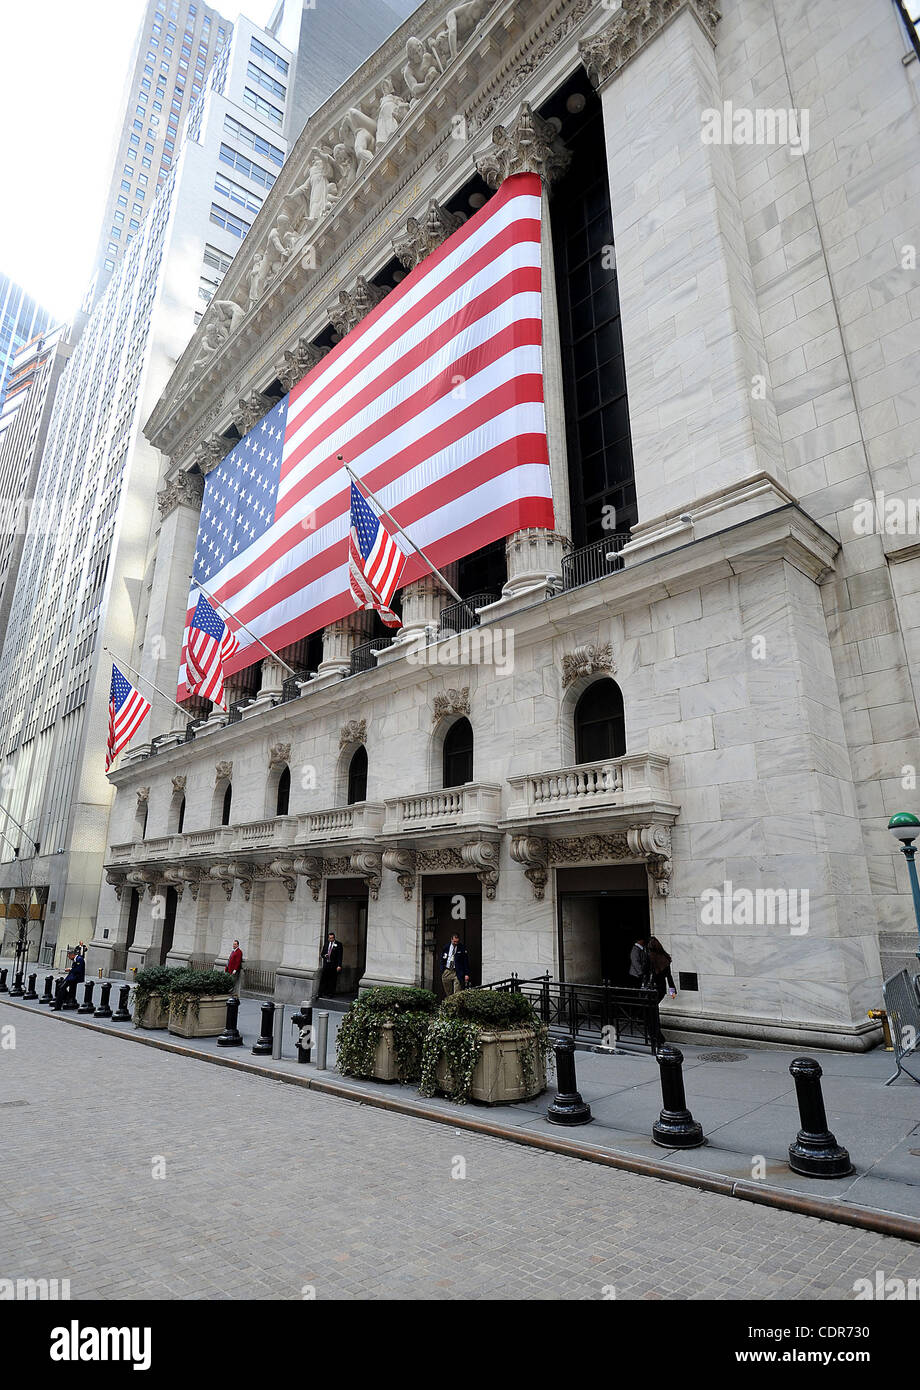 May 25, 2011 - New York, New York; USA - The New York Stock Exchange located in New York City with an American Flag, - Stock Image